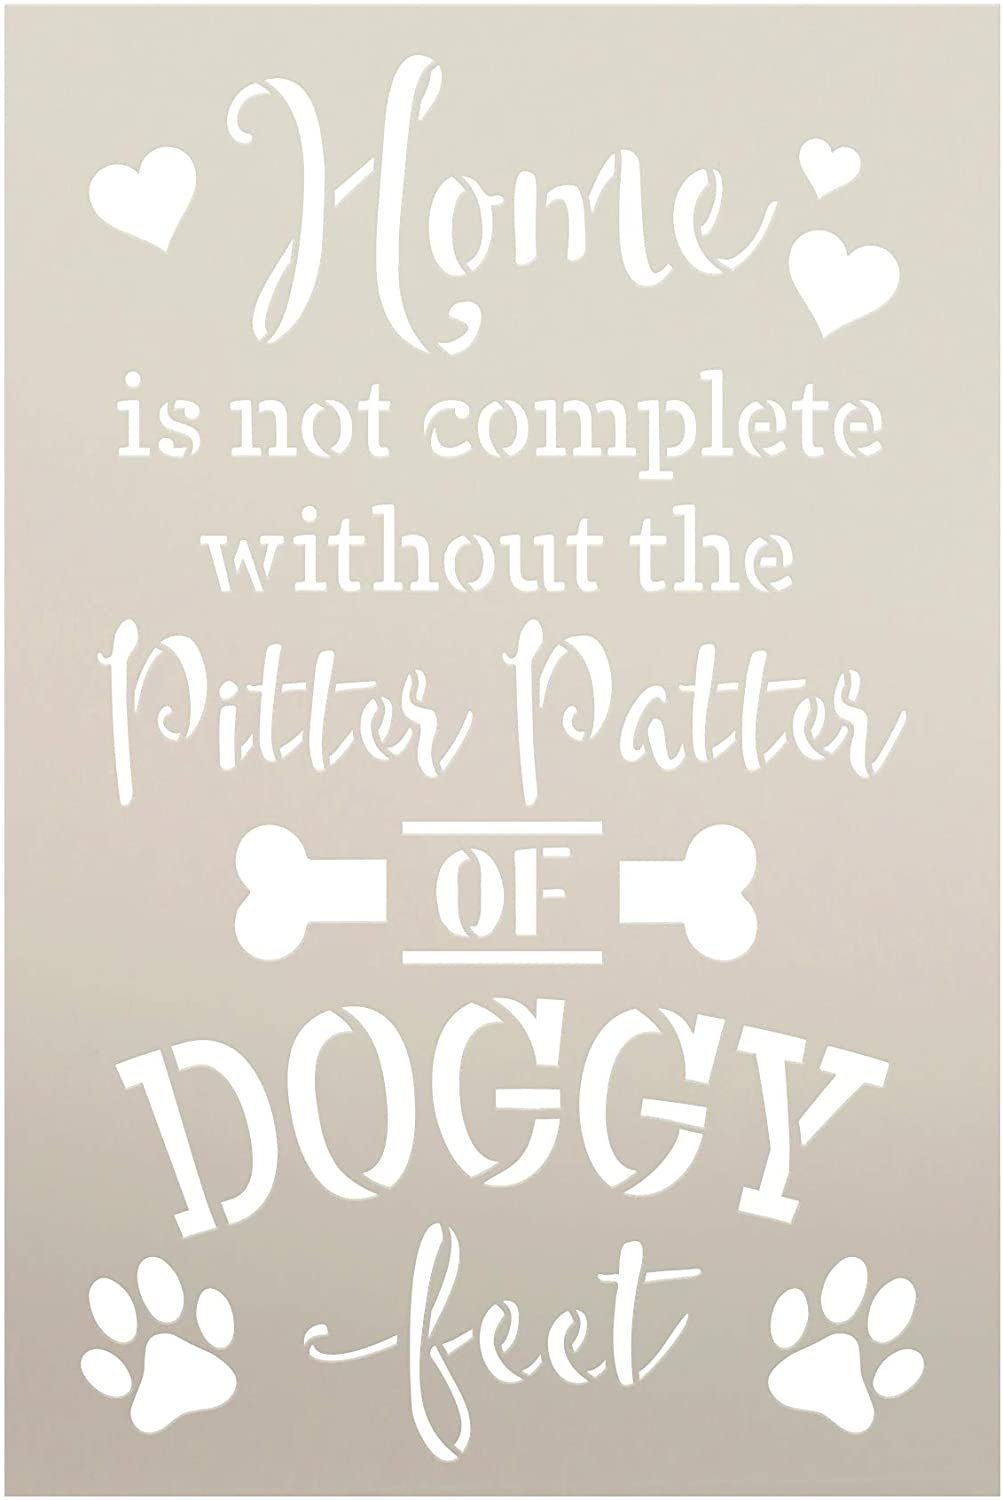 Home - Doggy Feet Stencil by StudioR12 | DIY Puppy Lover Home Decor | Craft & Paint Wood Sign | Reusable Mylar Template | Dog Bone Family Pet Pawprint Heart Gift | Select Size